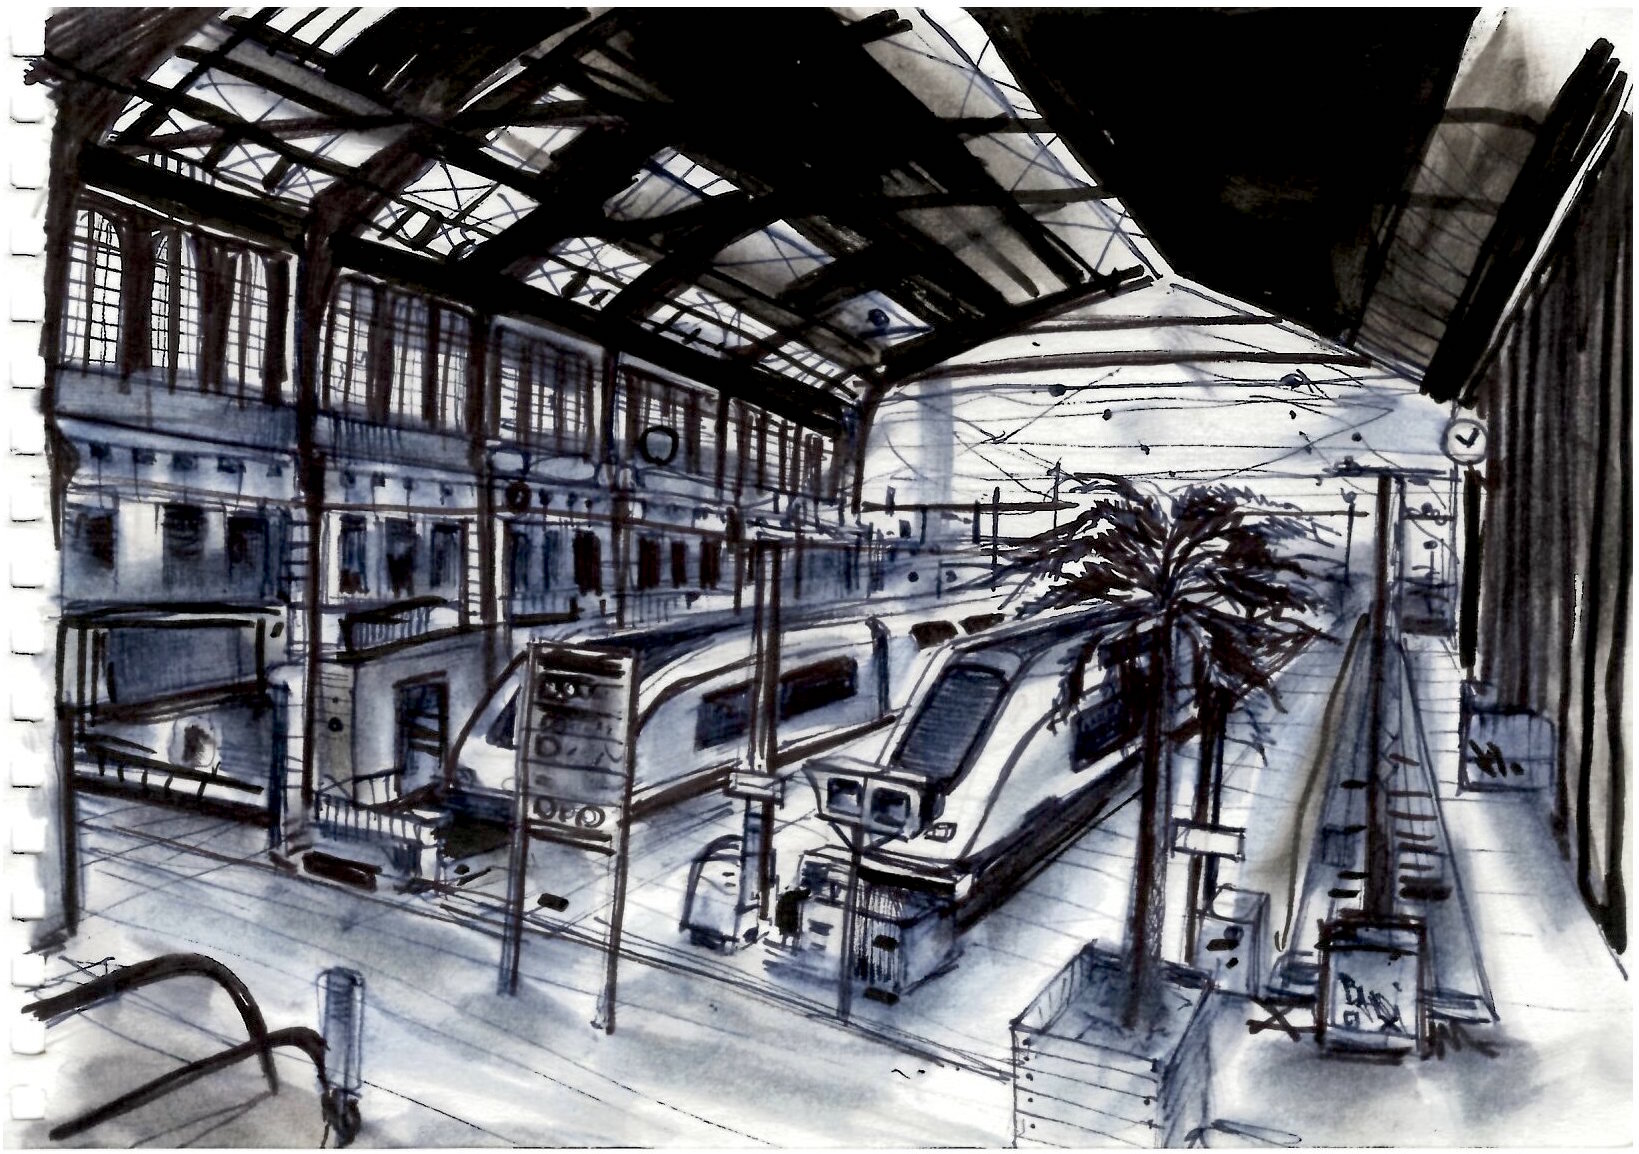 Gare De Paris Drawing Of Paris Gare De Lyon Illustration Nadib Bandi Drawing